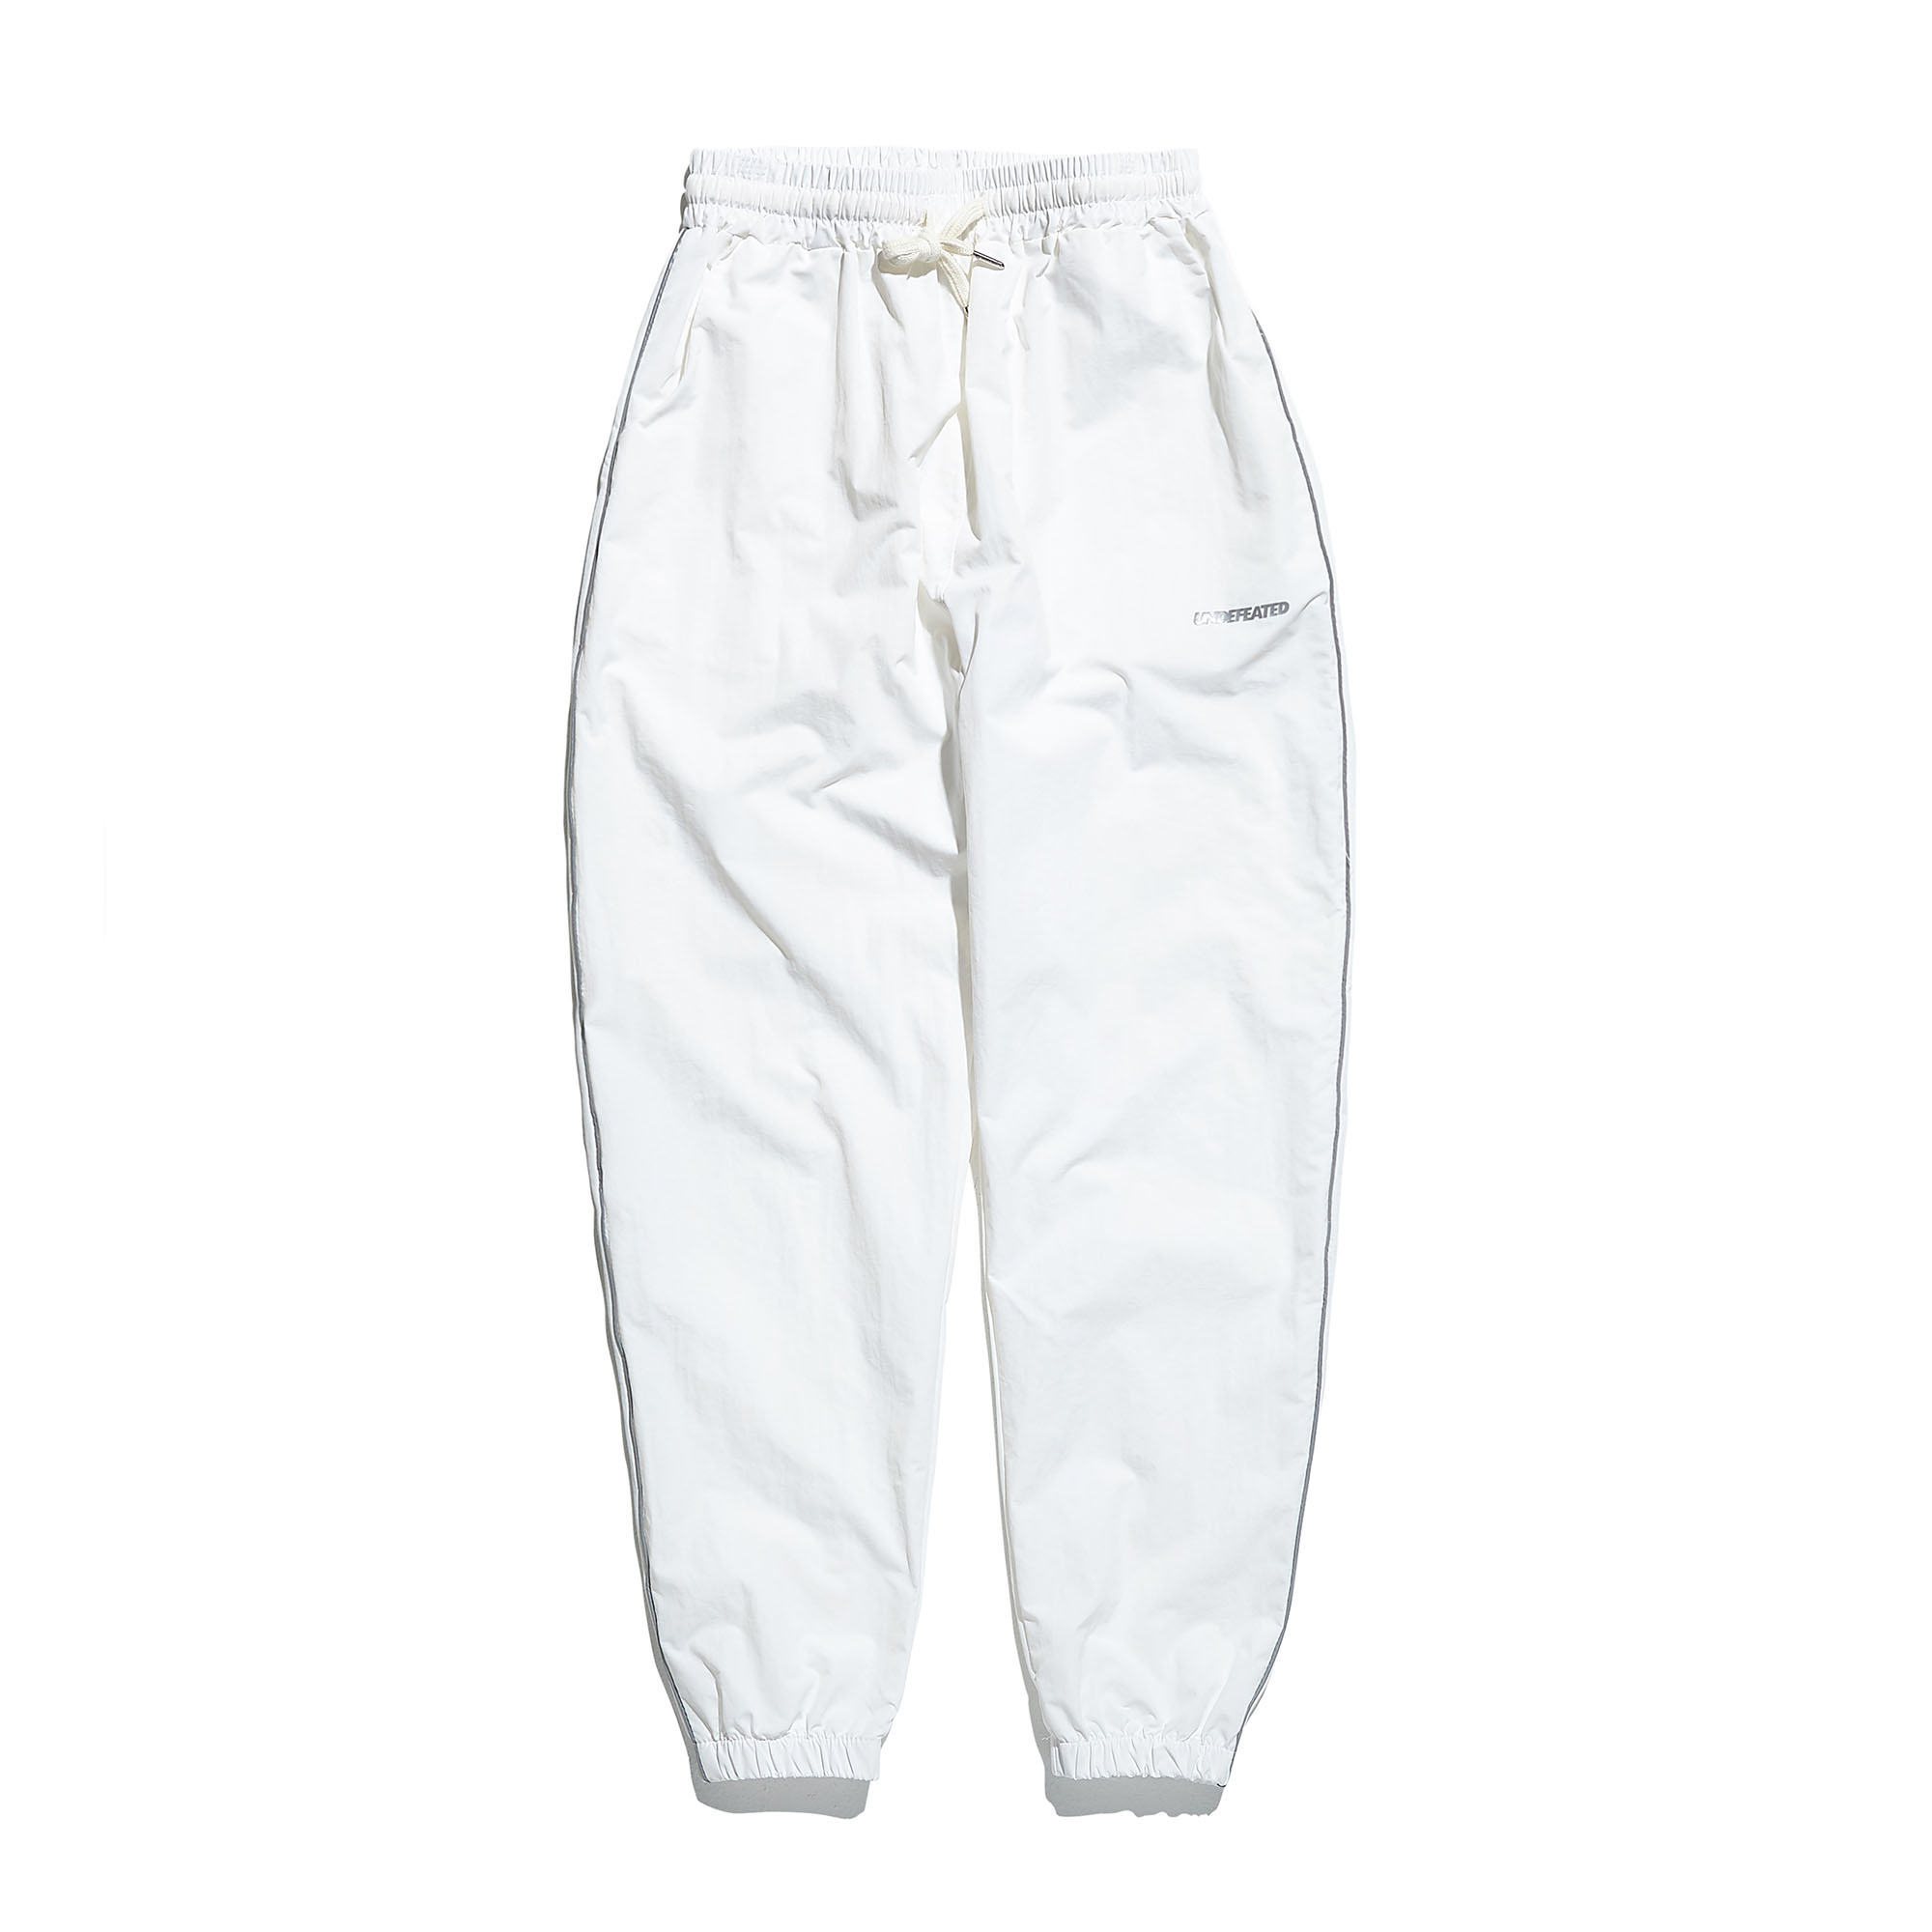 3M PIPING TRACK PANTS white